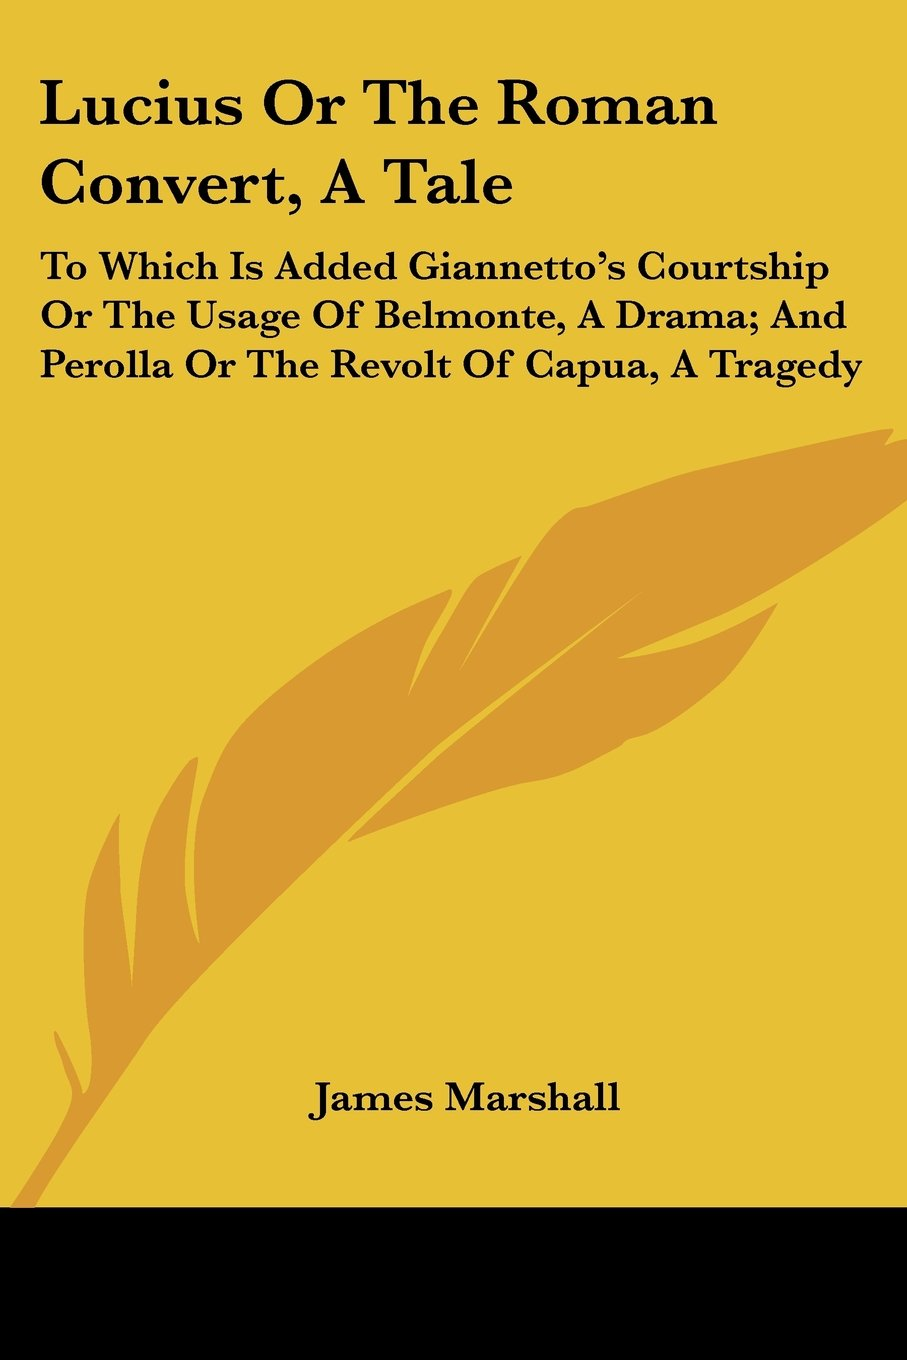 Lucius Or The Roman Convert, A Tale: To Which Is Added Giannetto's Courtship Or The Usage Of Belmonte, A Drama And Perolla Or The Revolt Of Capua, A Tragedy James Marshall